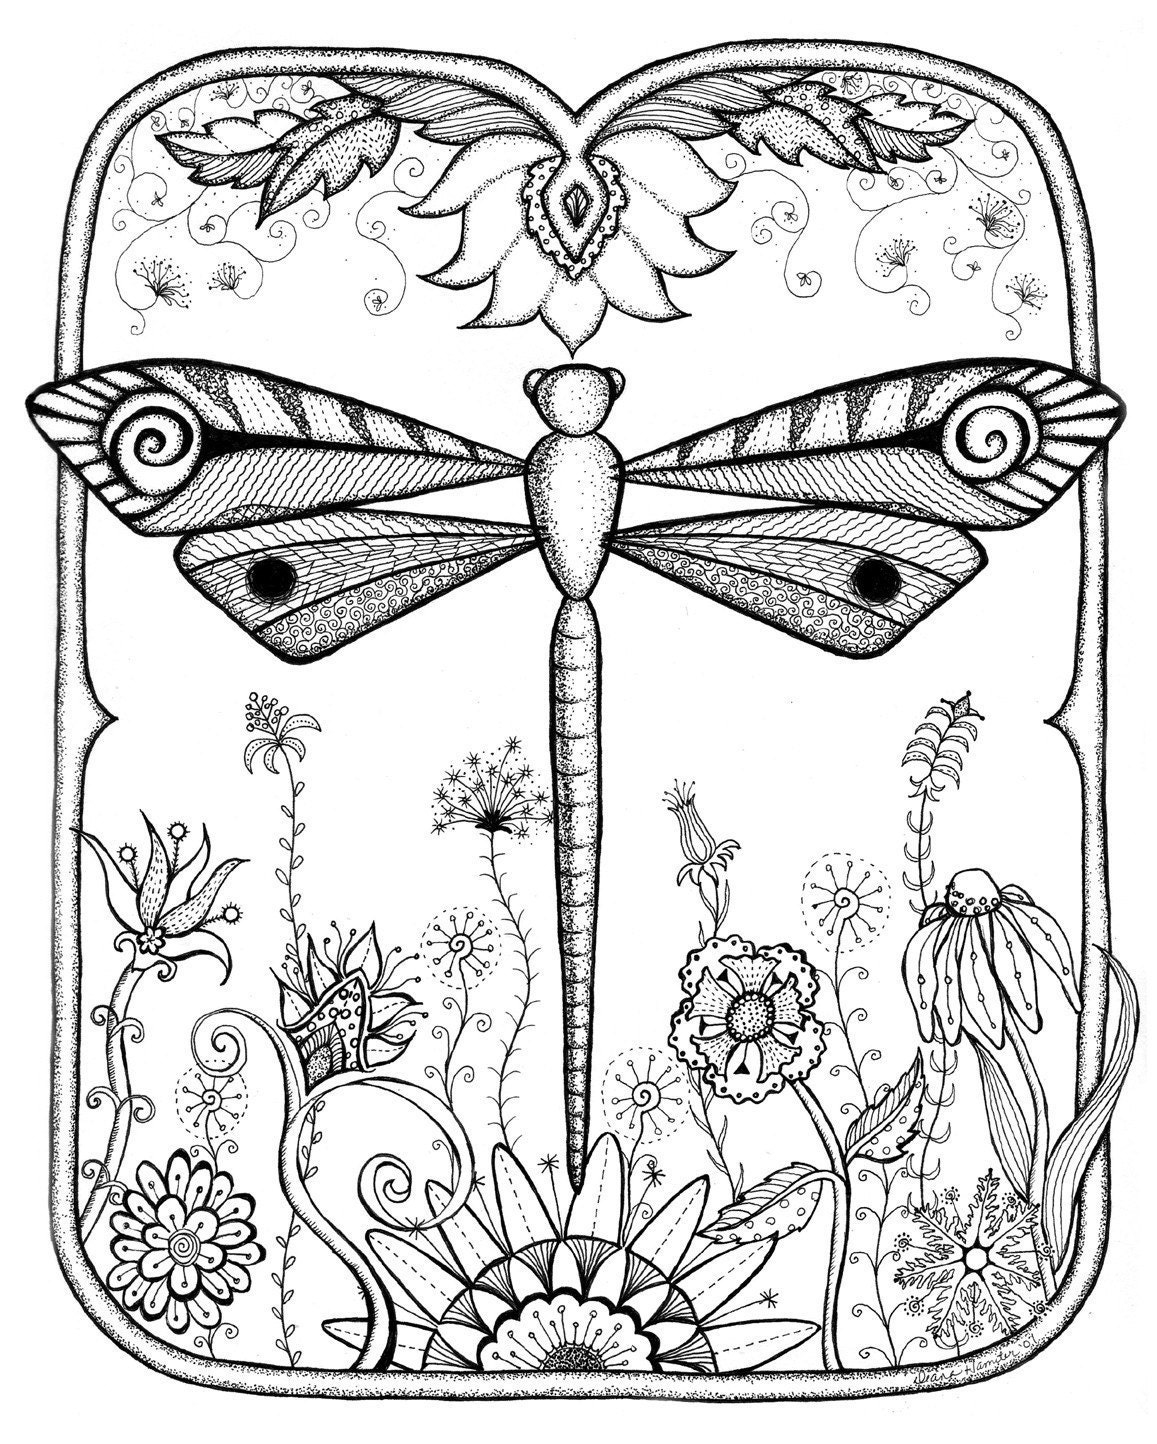 Dragonfly Colouring Pages : Dragonfly designs colouring pages